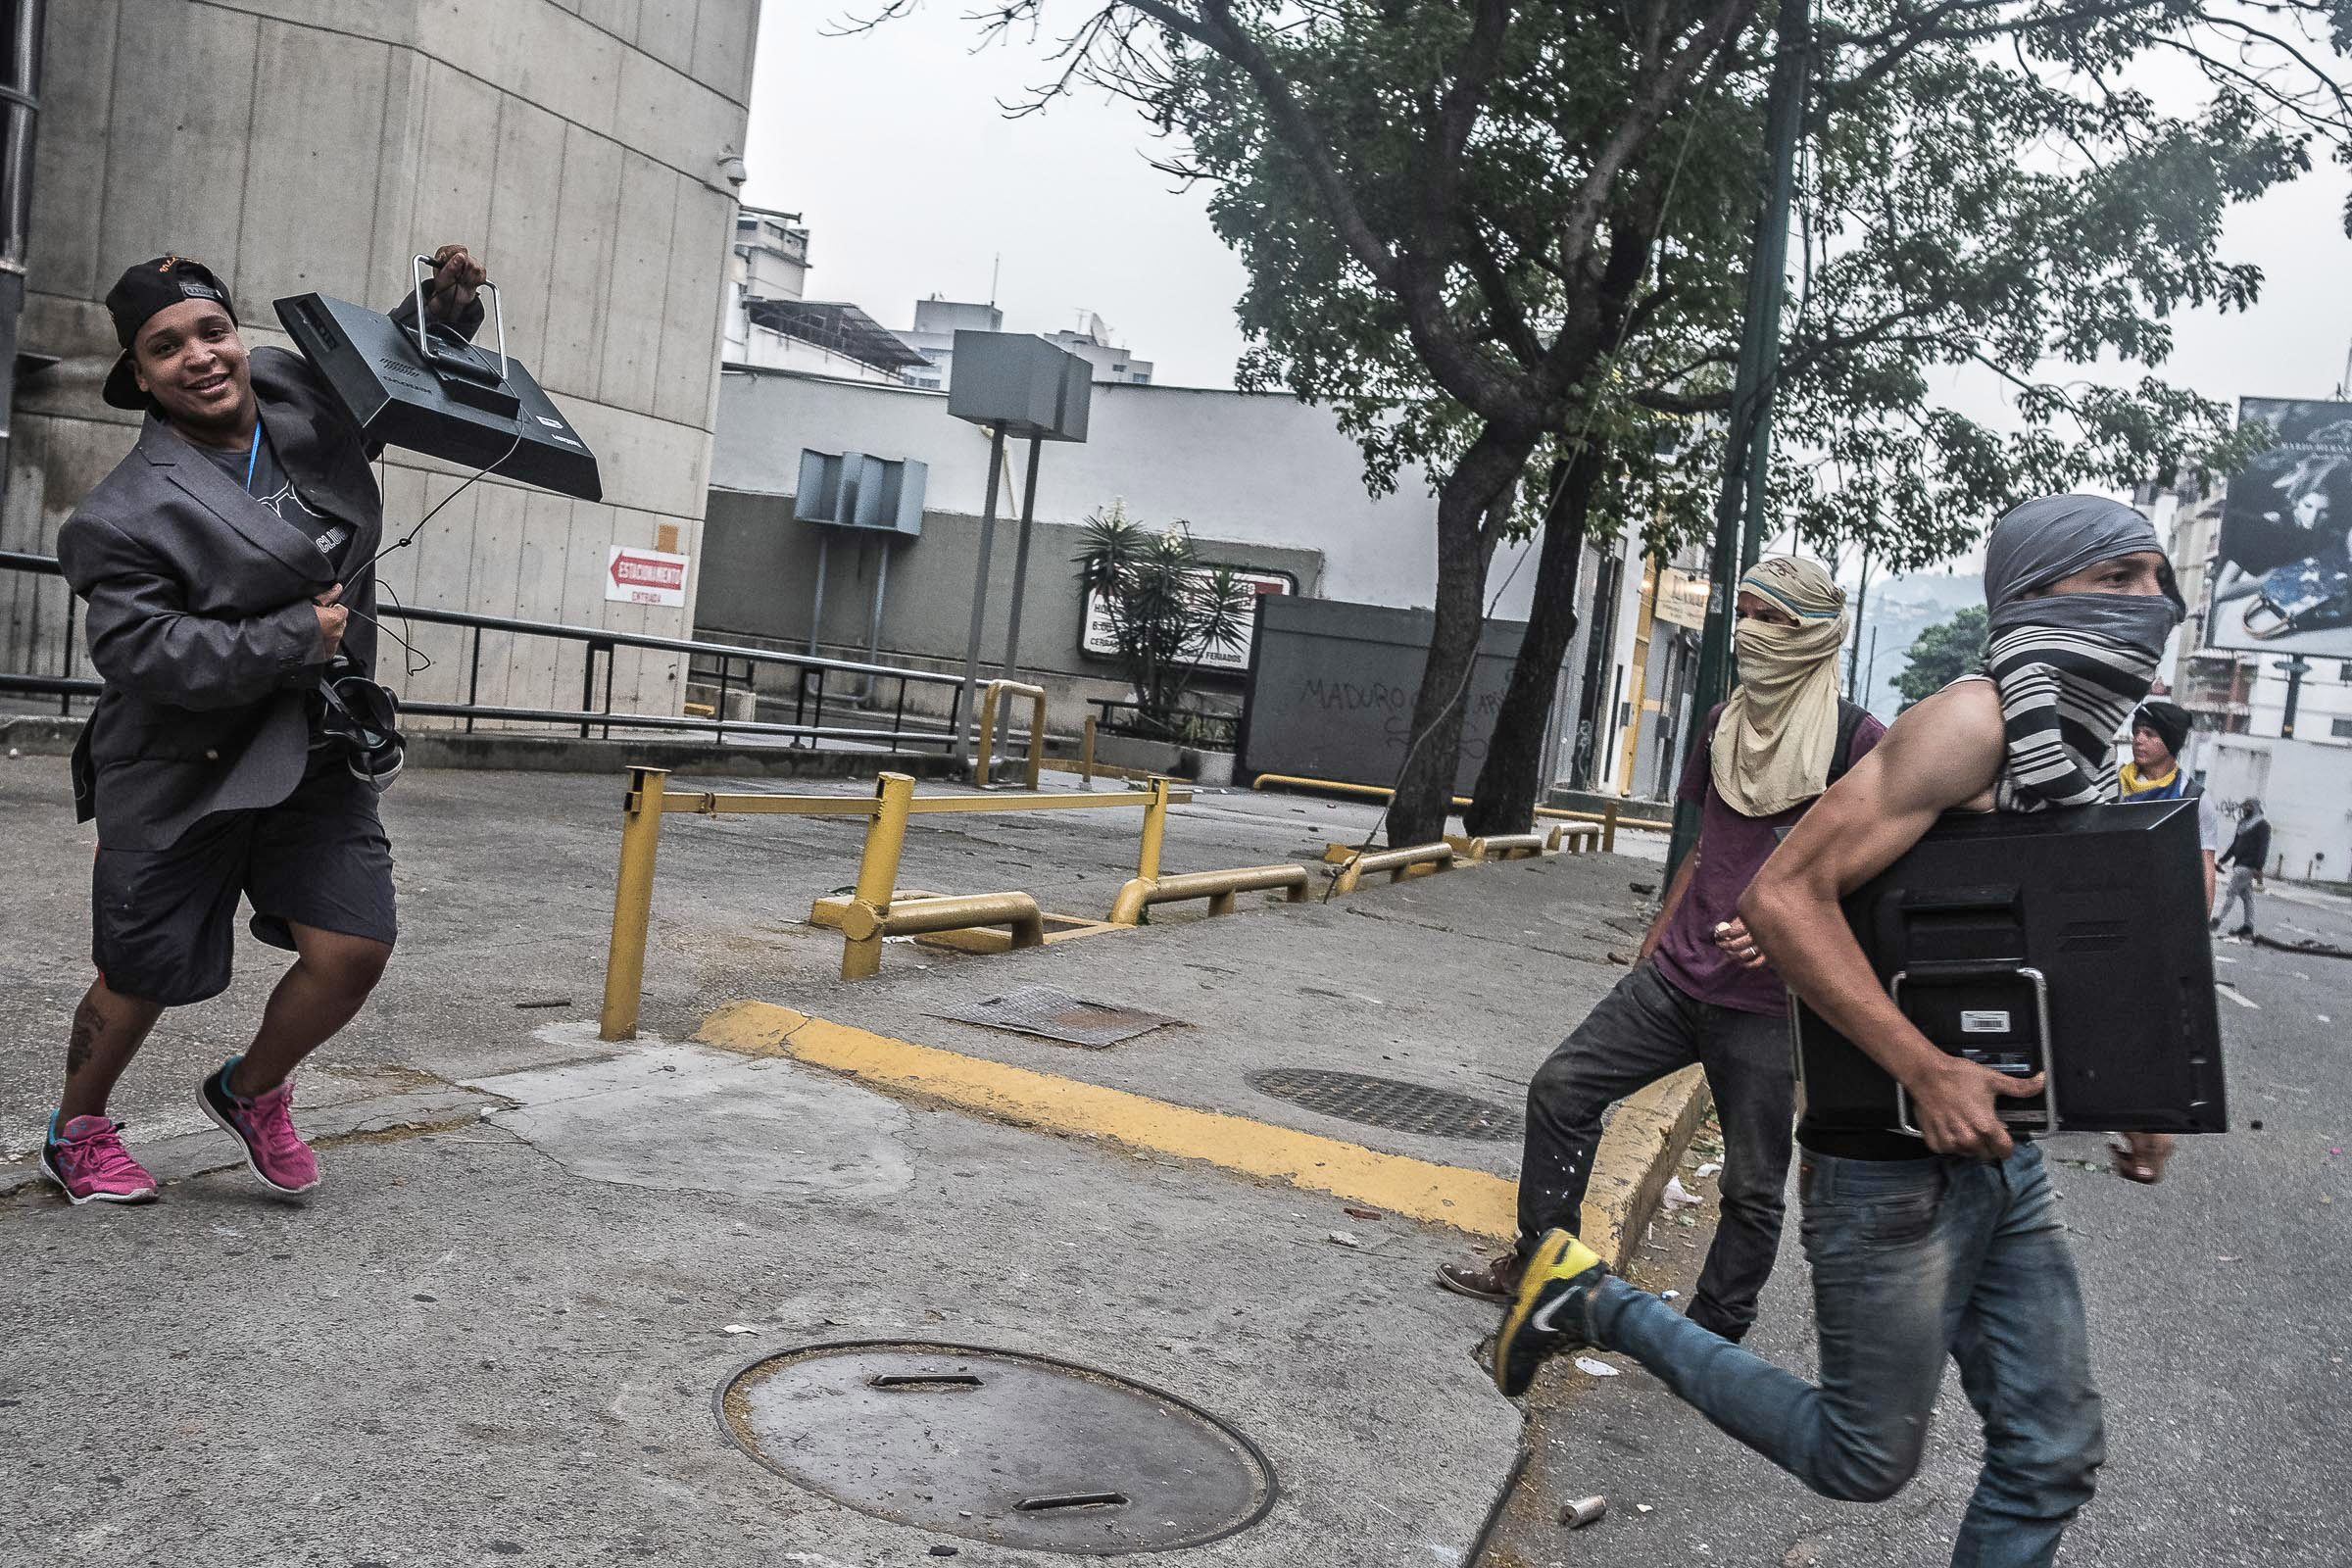 April 19, 2017 Caracas, Venezuela (Photo by Joris van Gennip /GroundTruth)